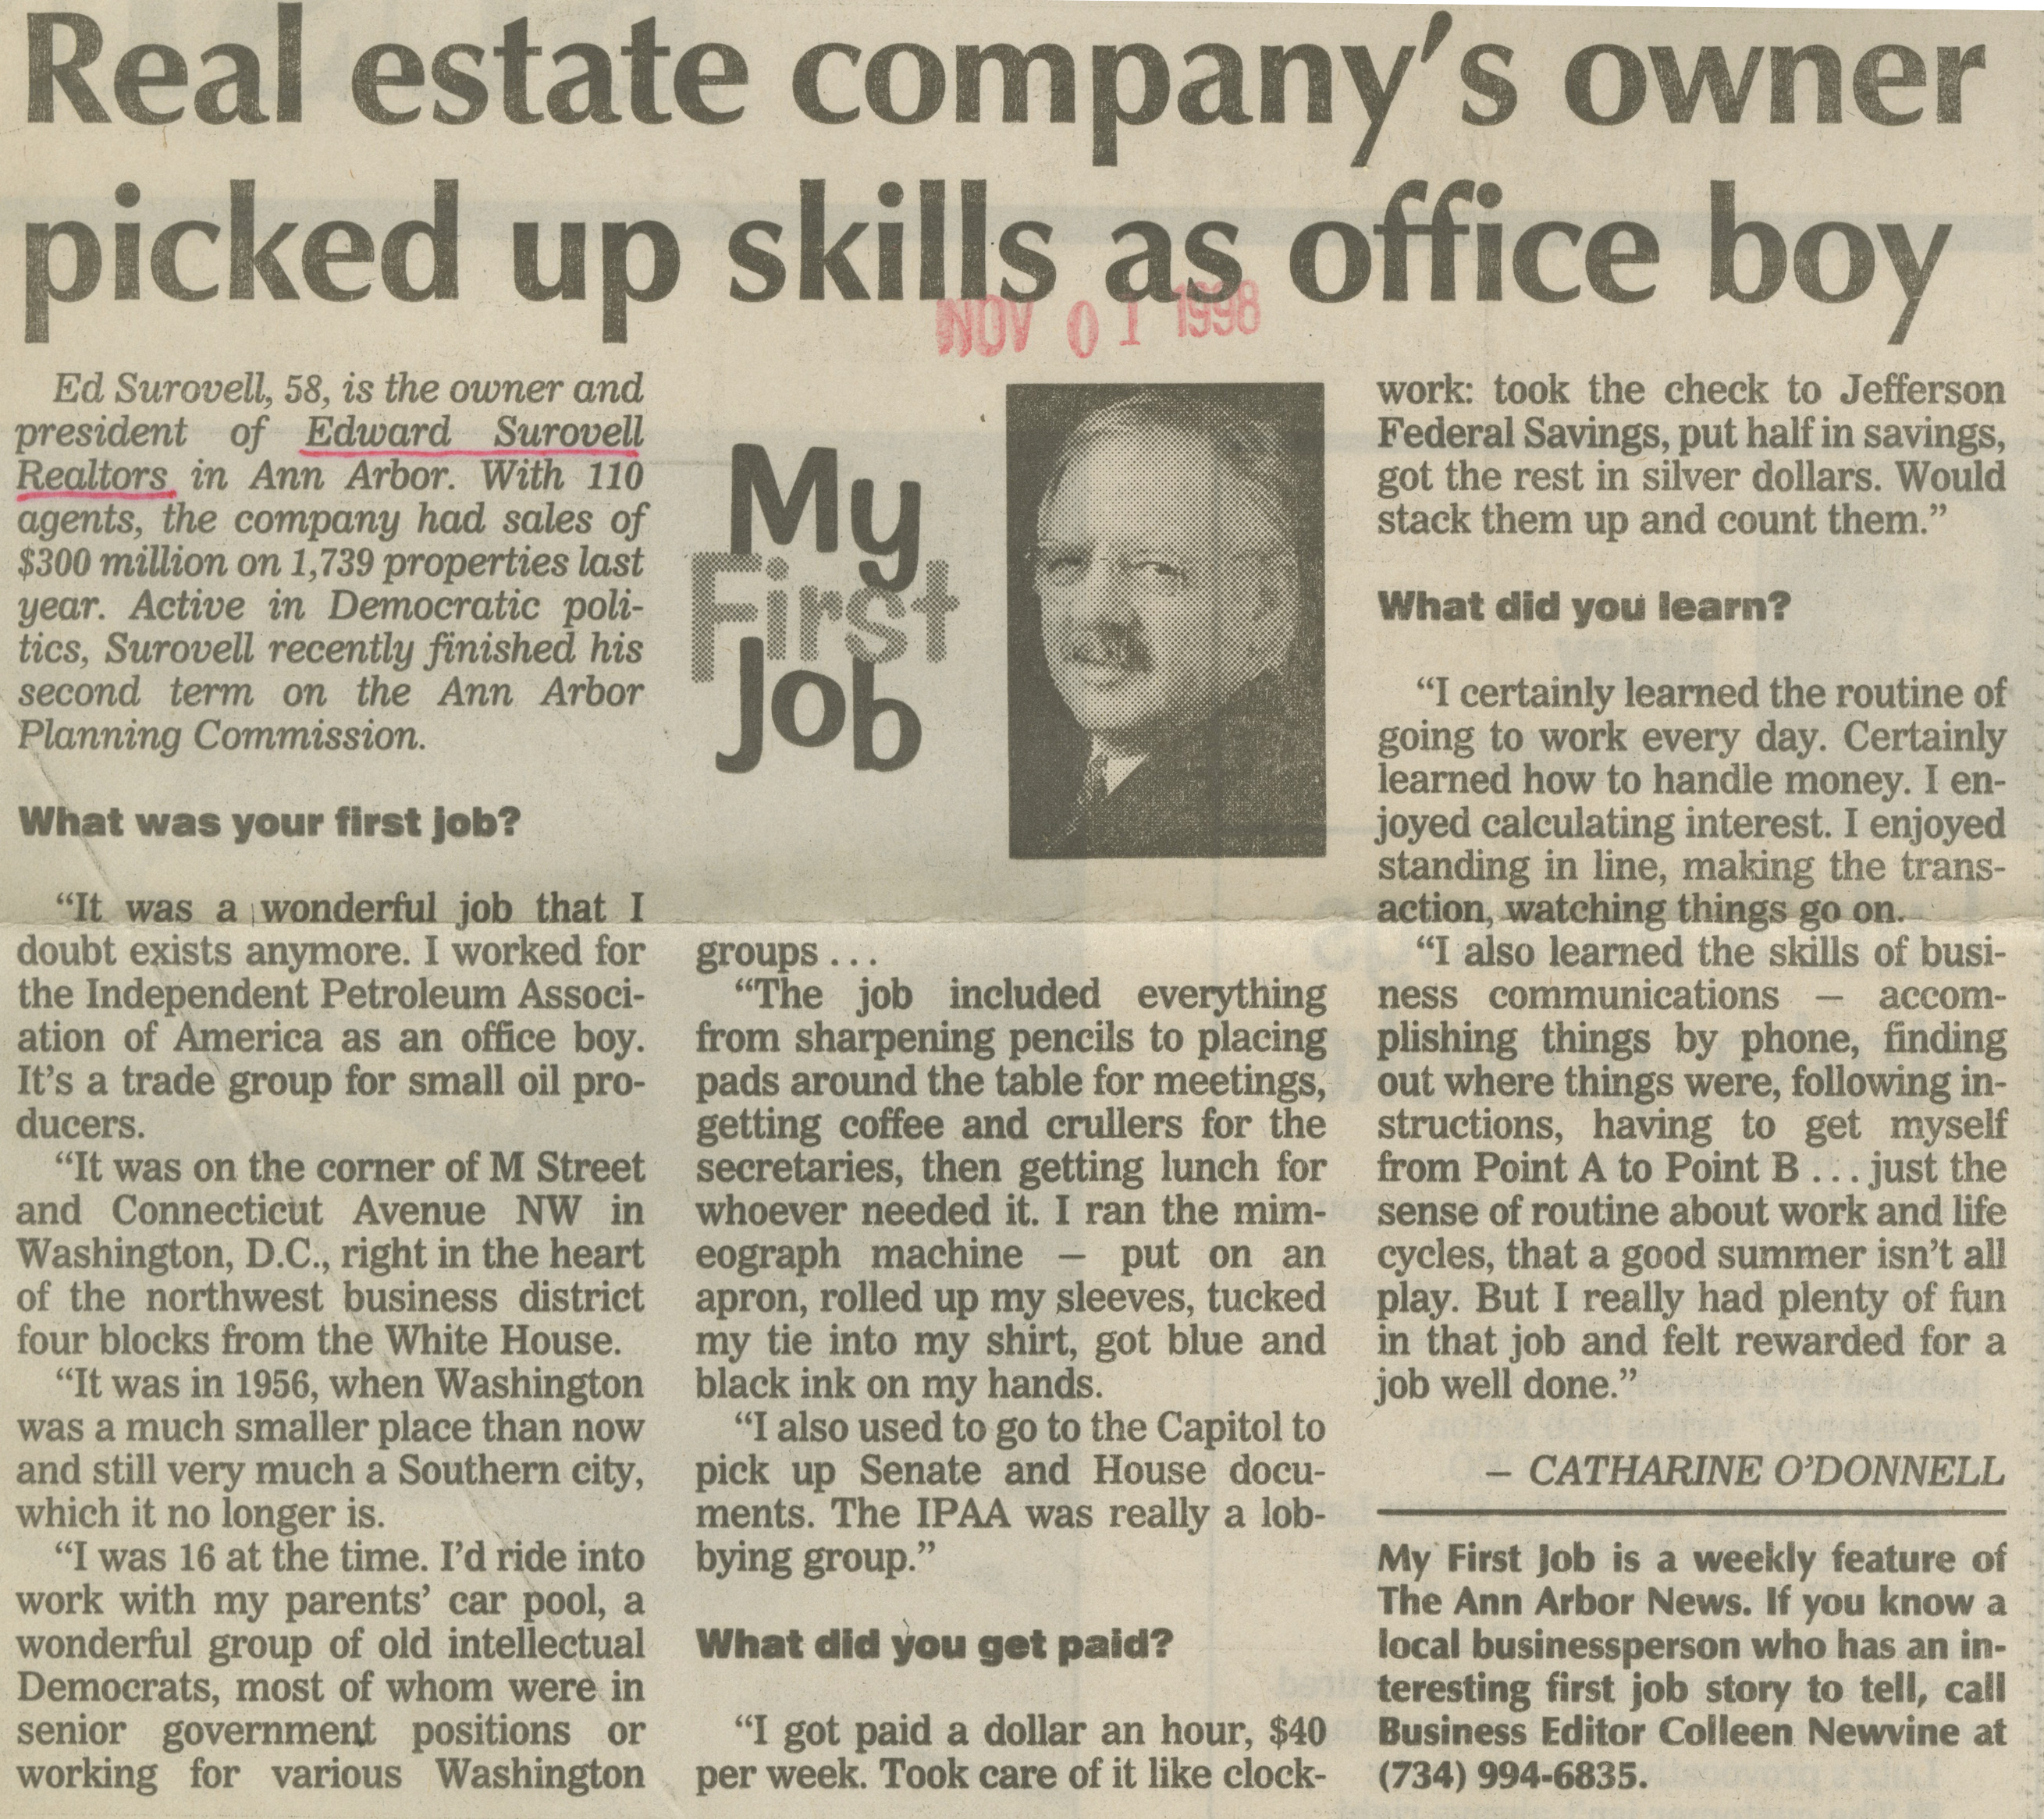 Real Estate Company's Owner Picked Up Skills As Office Boy image